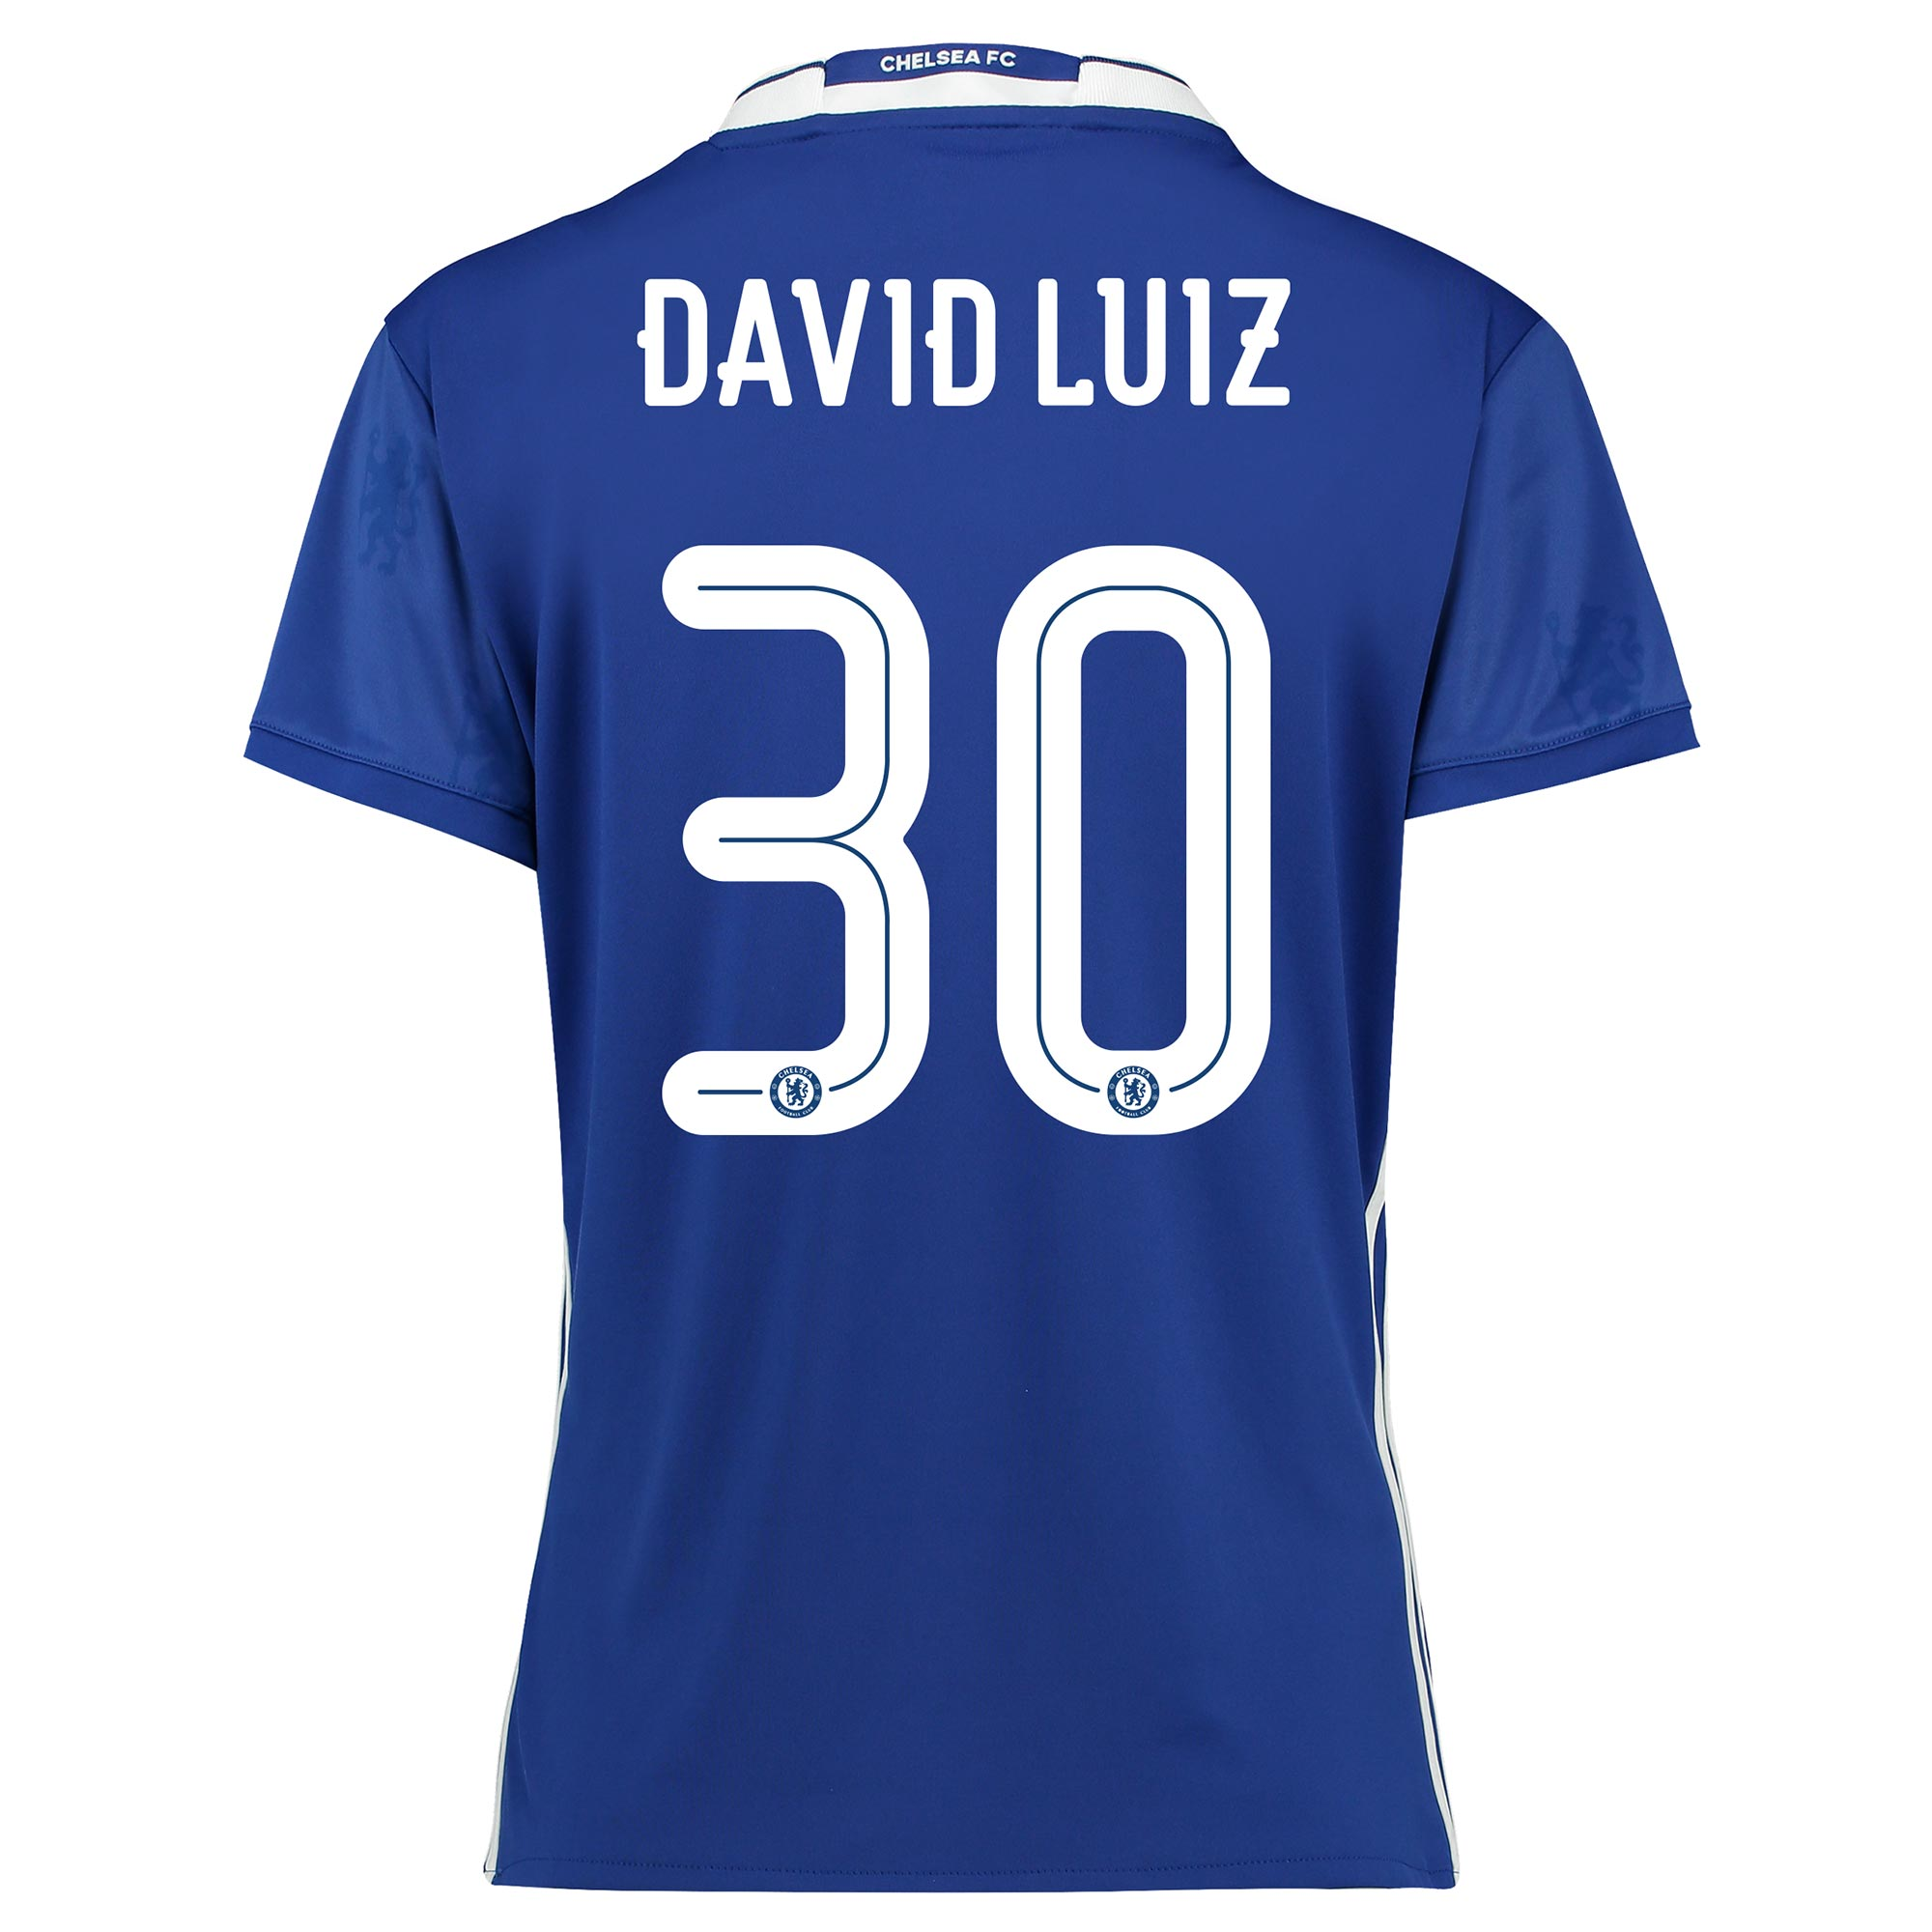 Chelsea Linear Home Shirt 2016-17 - Womens Fit with David Luiz 30 prin